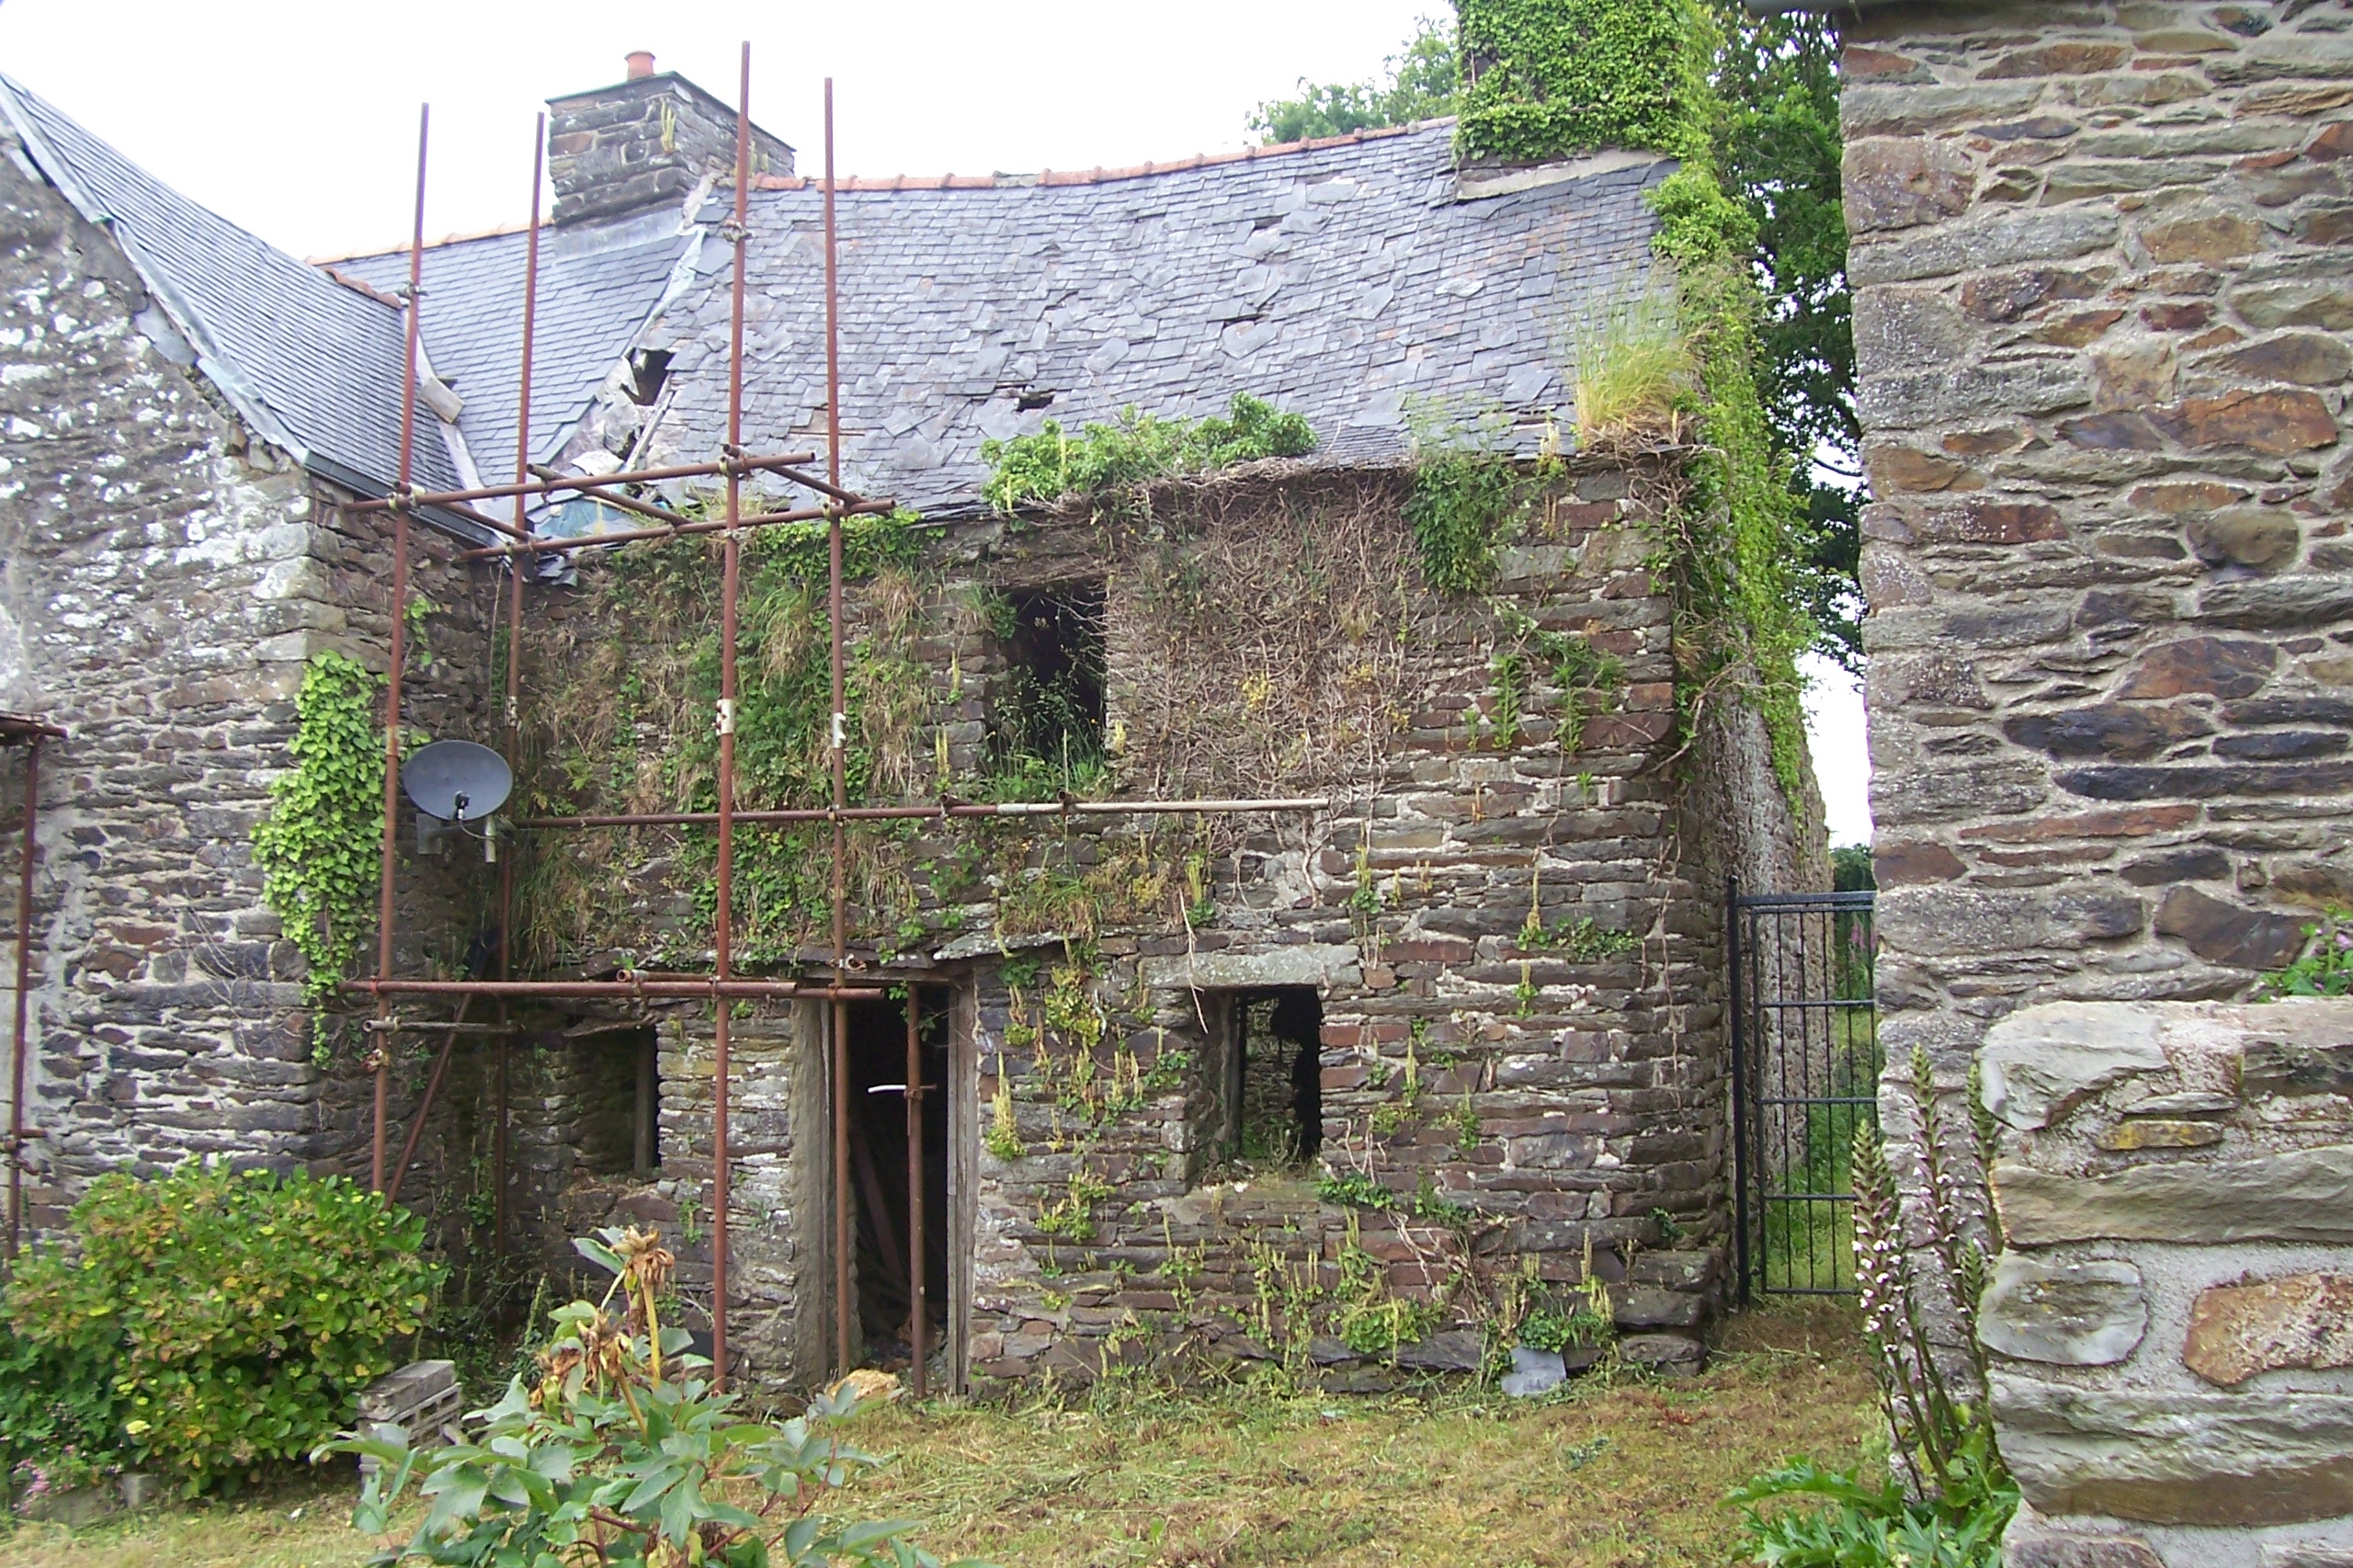 Brittany property for sale english speaking agents in for Vieille maison en pierre